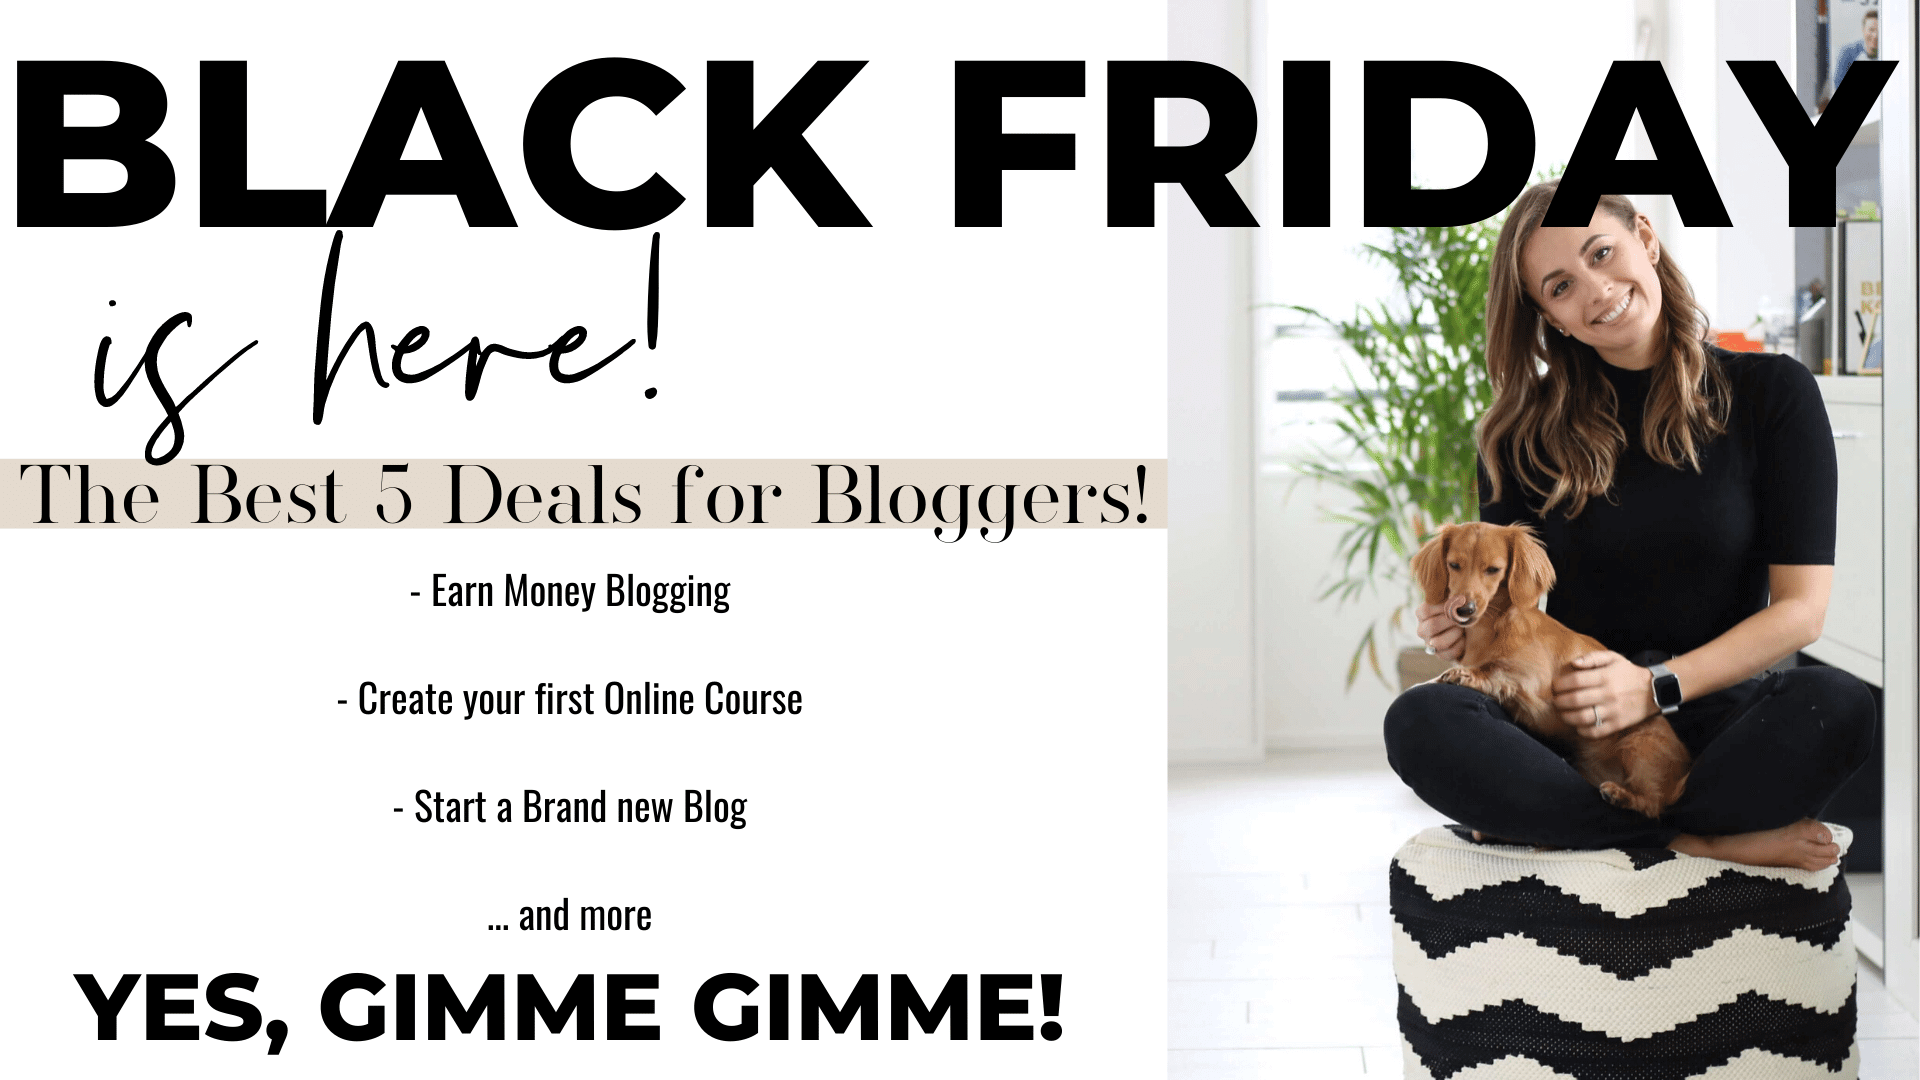 Black Friday 2019 for Bloggers